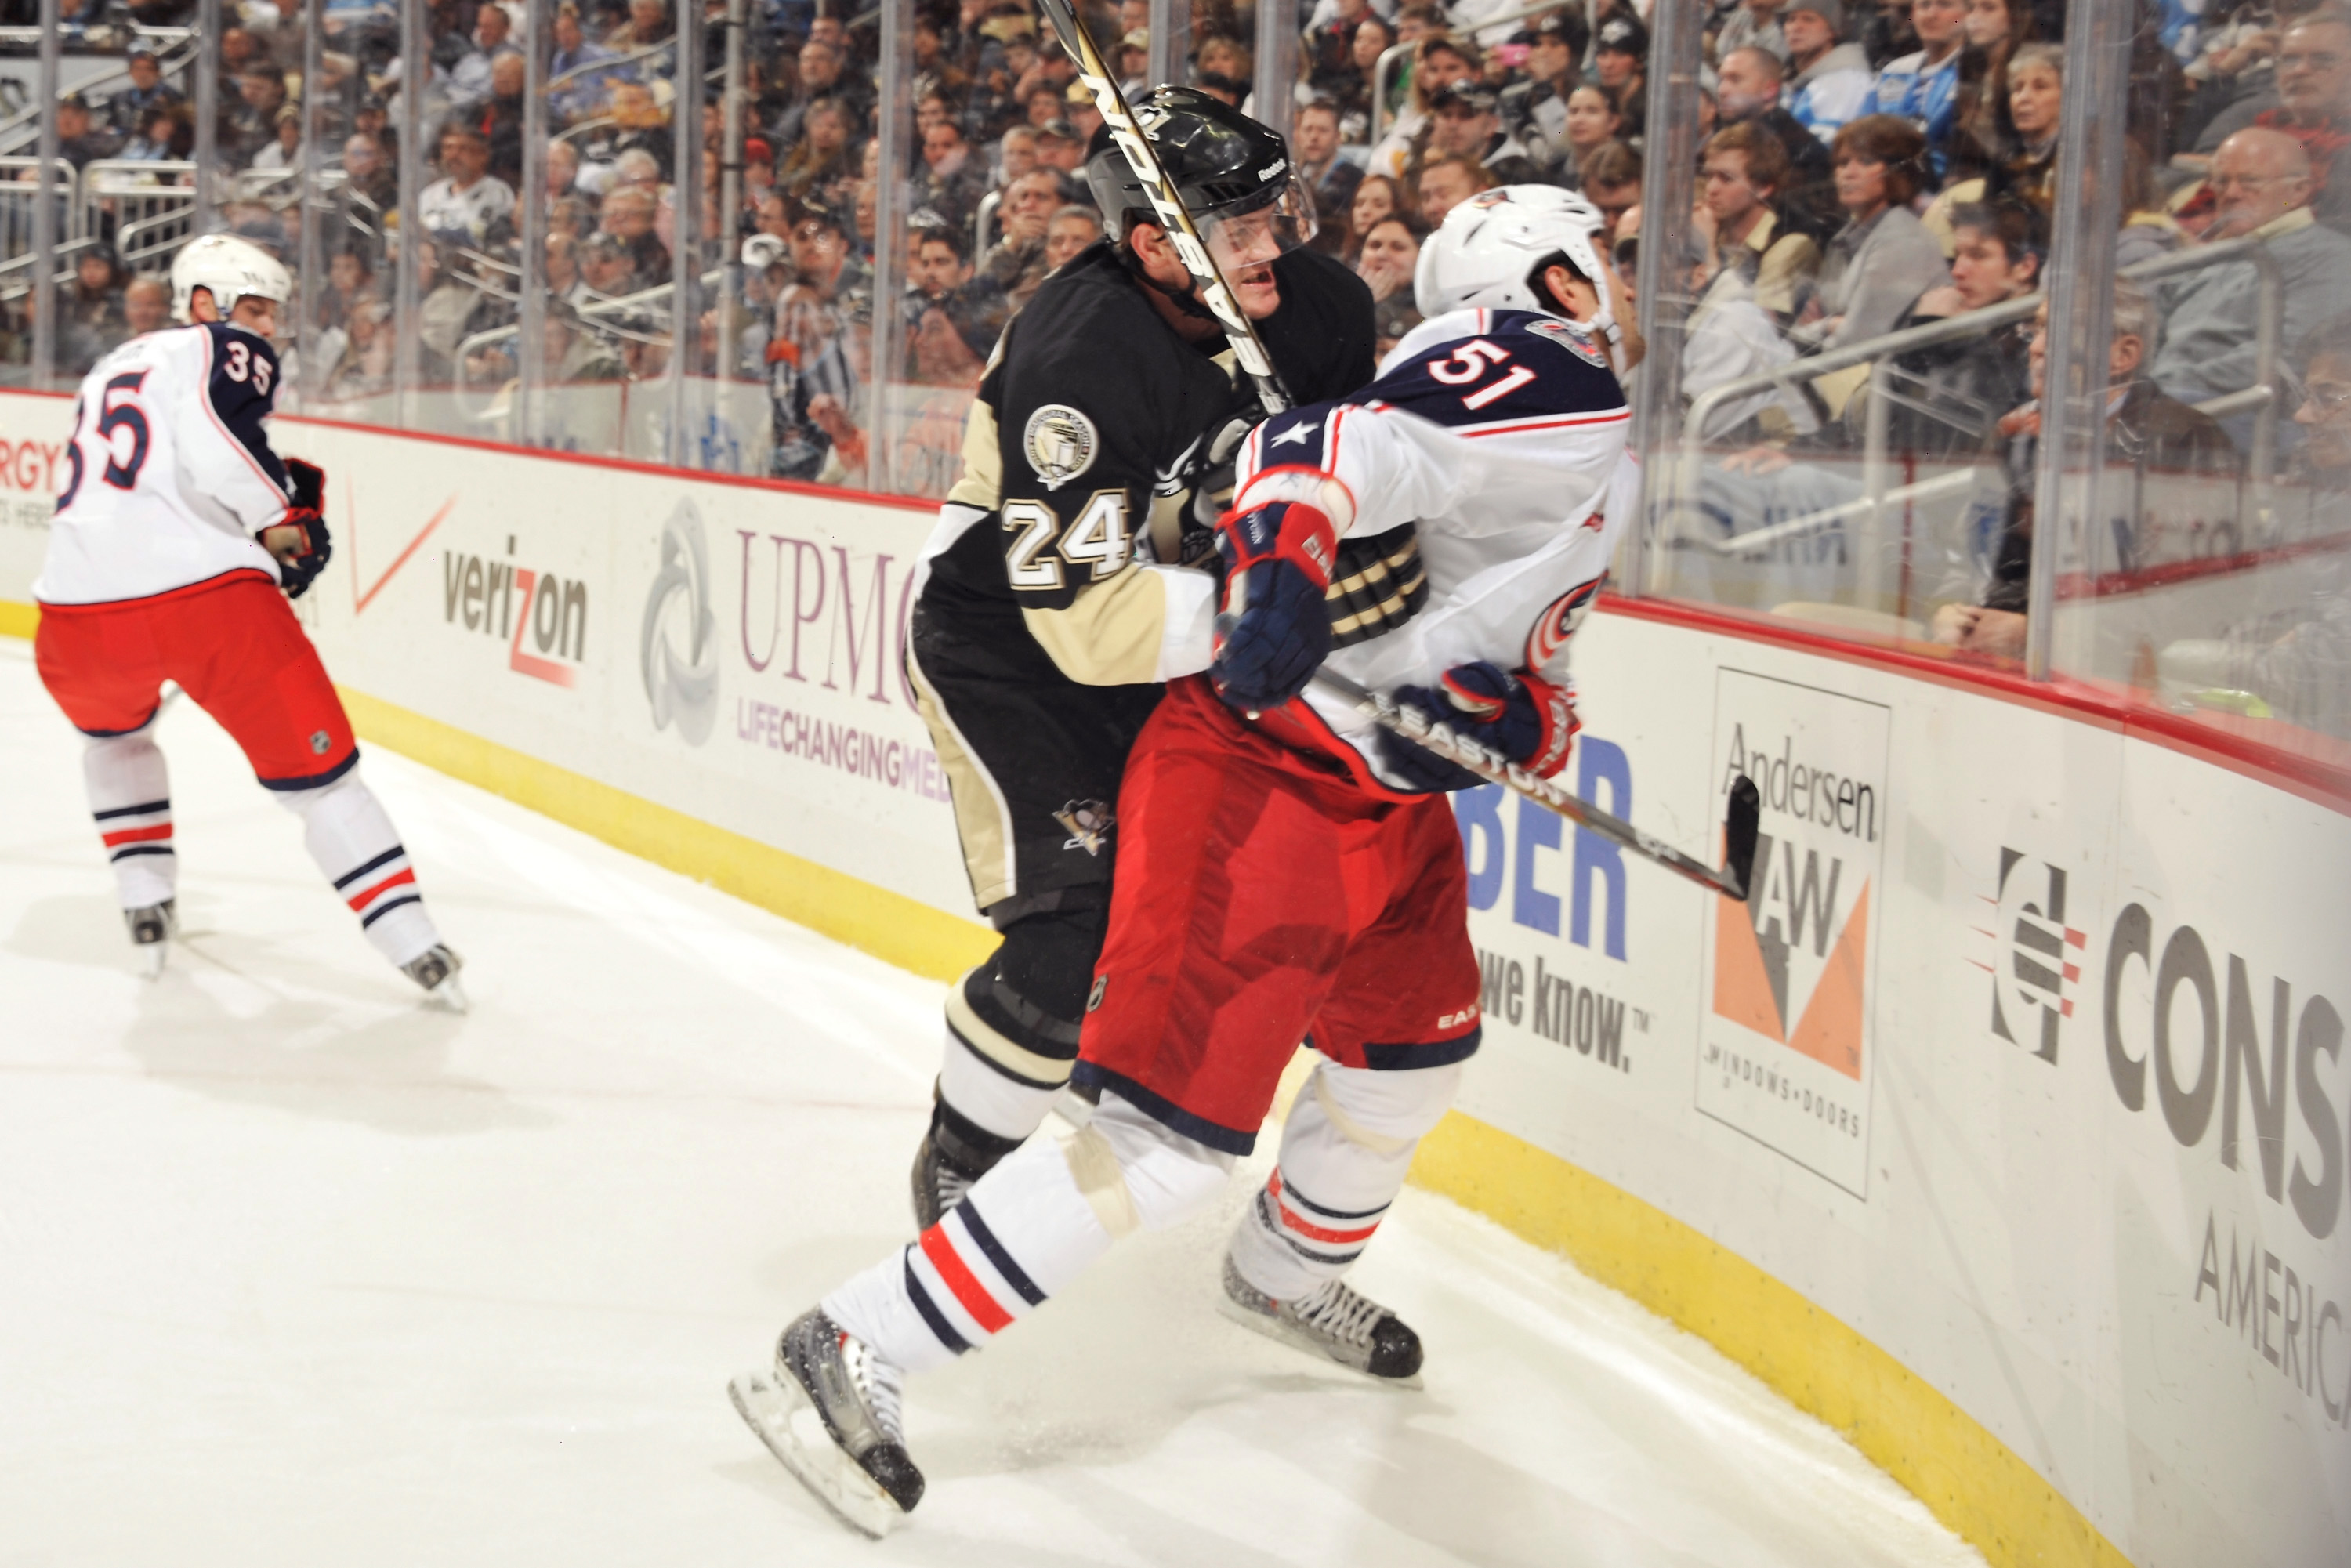 PITTSBURGH, PA - FEBRUARY 8:  Matt Cooke #24 of the Pittsburgh Penguins checks Fedor Tyutin #51 of the Columbus Blue Jackets in the first period on February 8, 2011 at CONSOL Energy Center in Pittsburgh, Pennsylvania. Cooke was assessed a five-minute majo